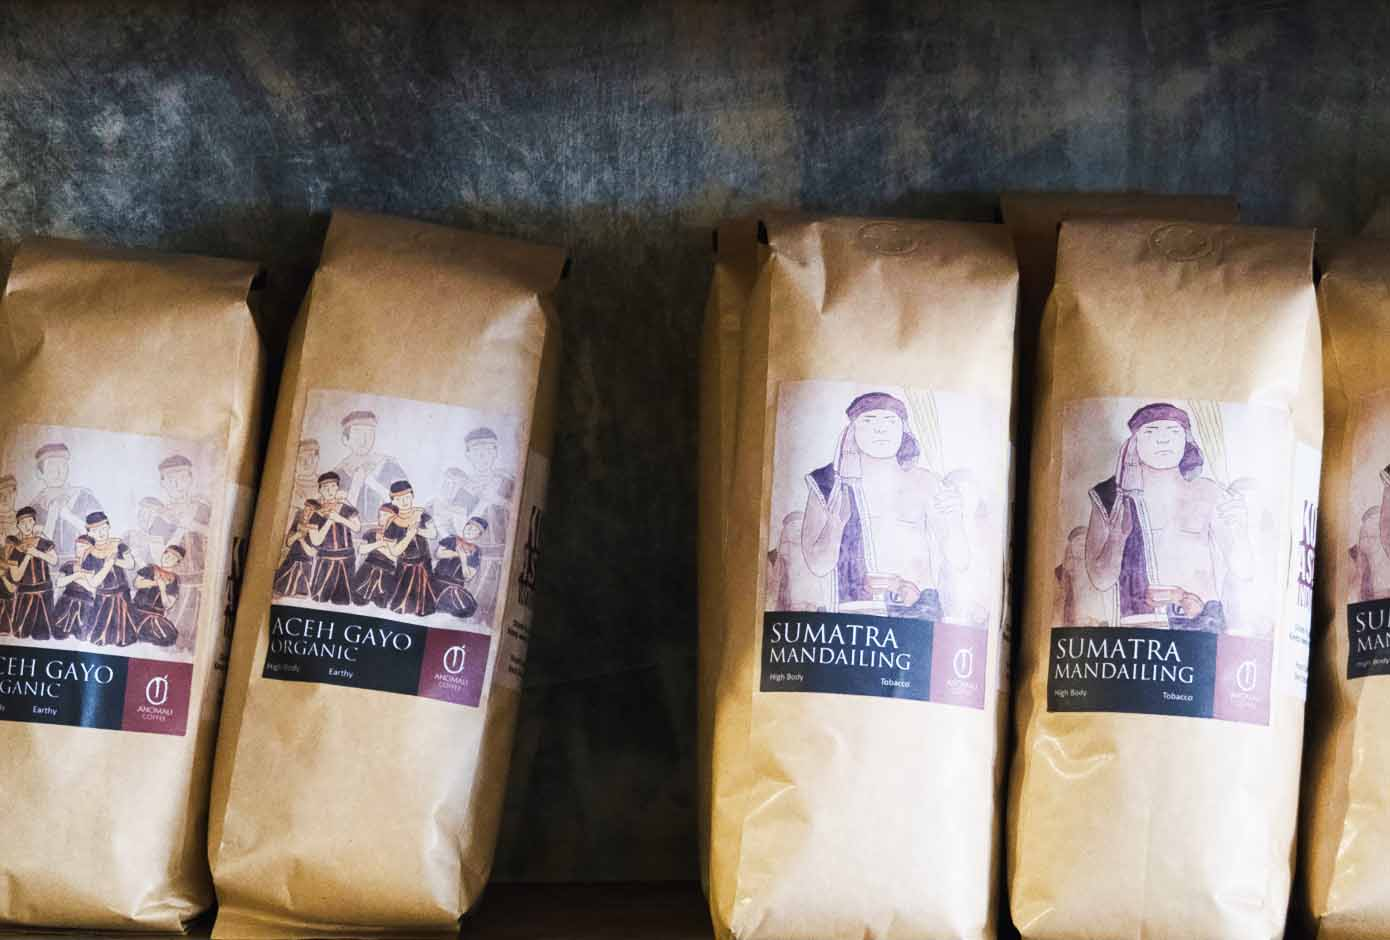 Anomali Coffee - My Top 12 Speciality Coffee and Brunch Shops in Bali   A Guide of Bali   Mondomulia